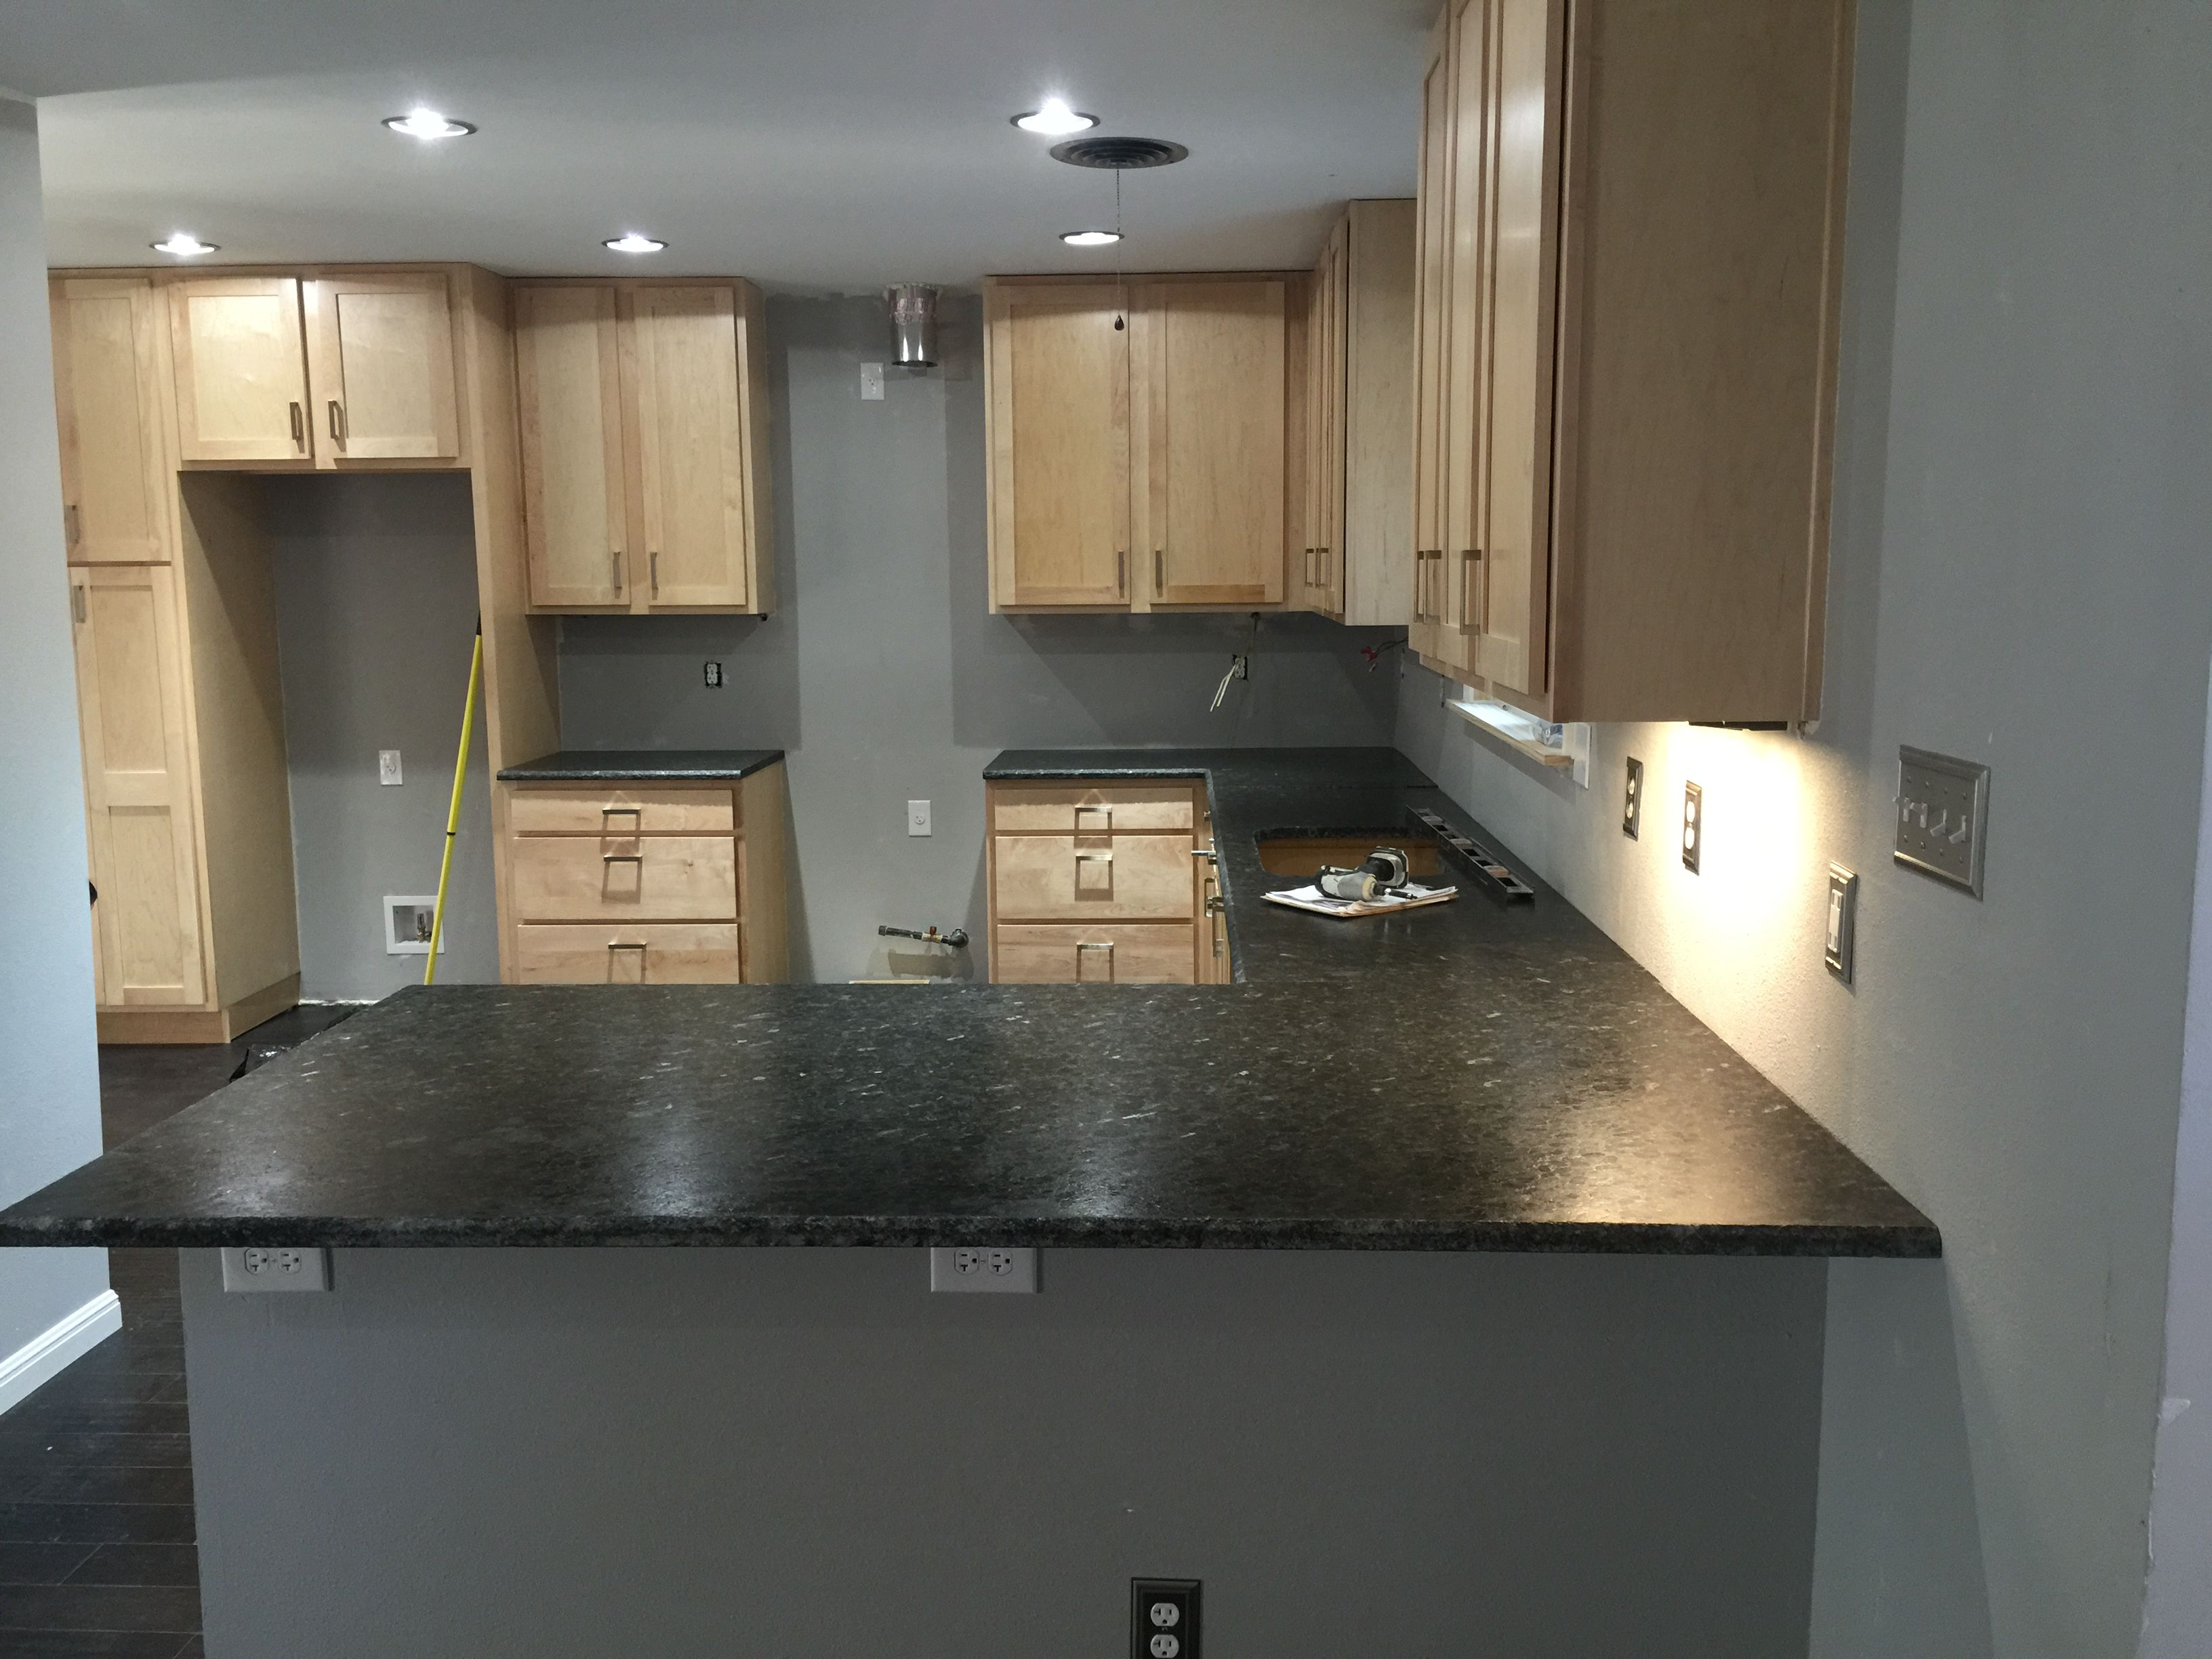 star prepare granite to of countertop inc your for countertops five stone kitchen how installation installed a cost